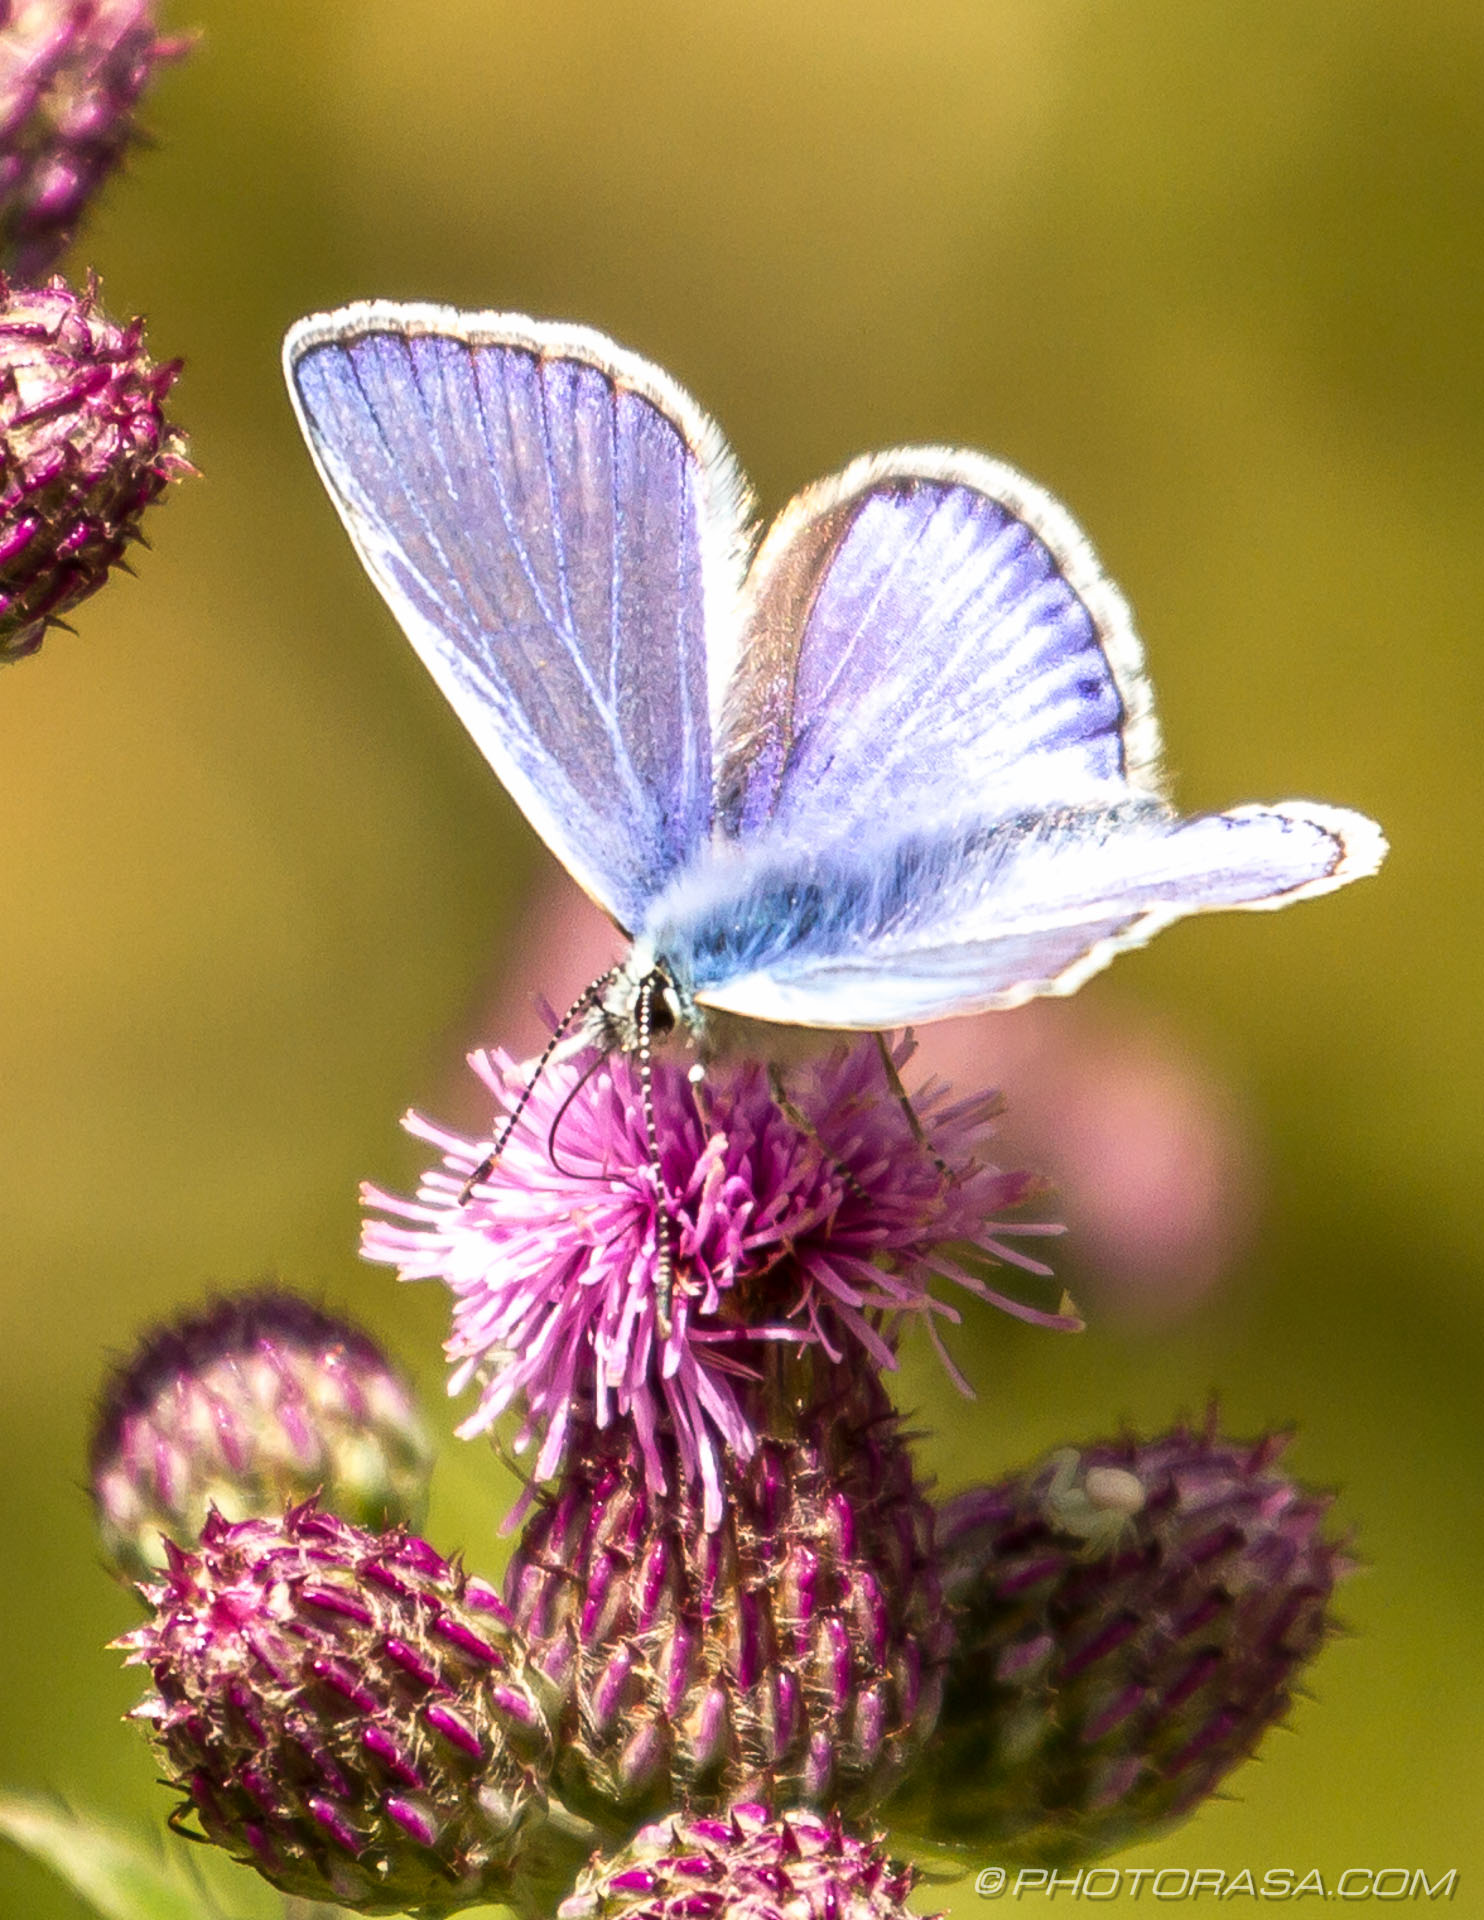 https://photorasa.com/common-blue-butterfly/male-common-blue-and-on-purple-flower/